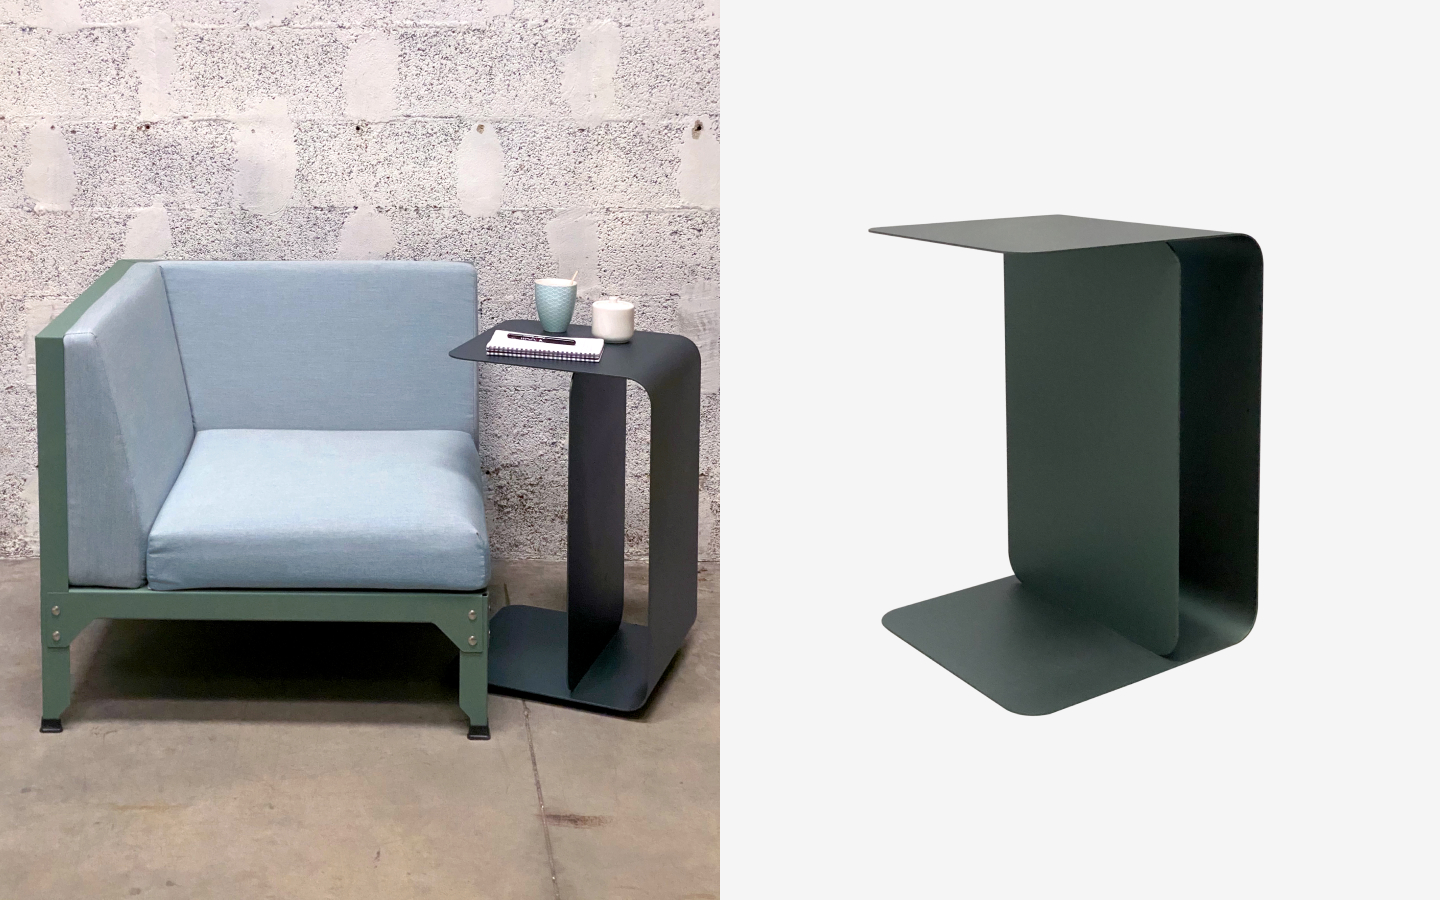 Green metal sheet side table with curved edges